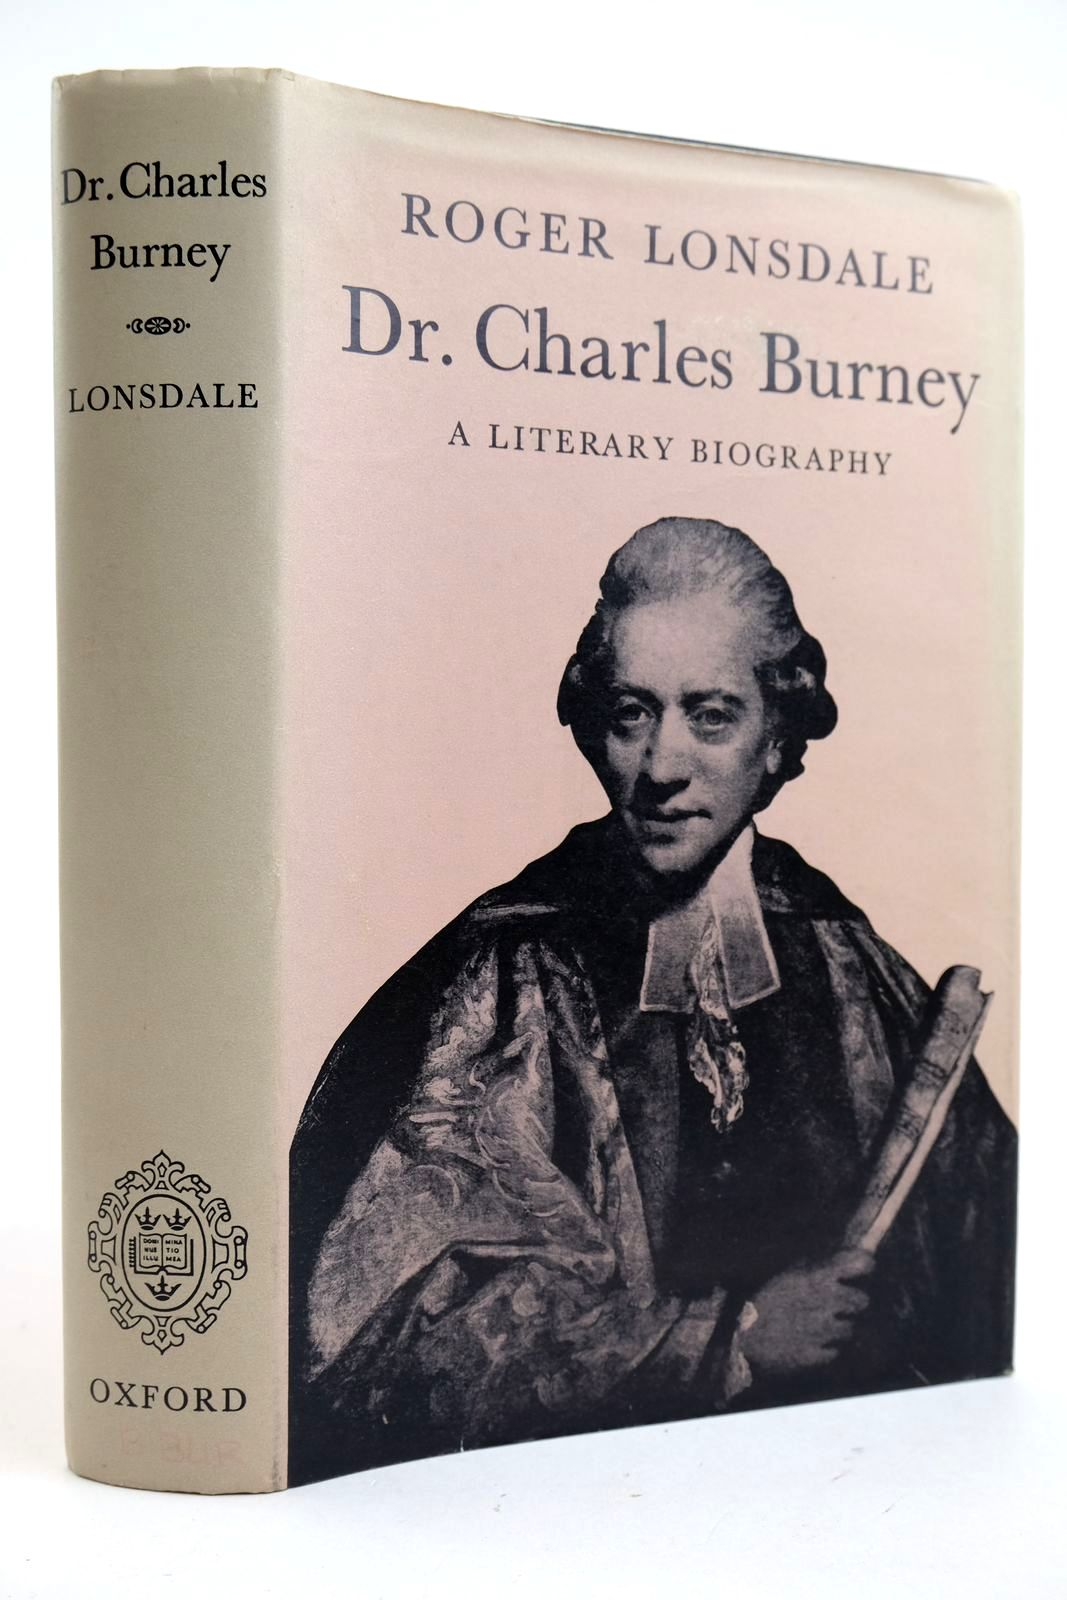 Photo of DR. CHARLES BURNEY A LITERARTY BIOGRAPHY- Stock Number: 2132942